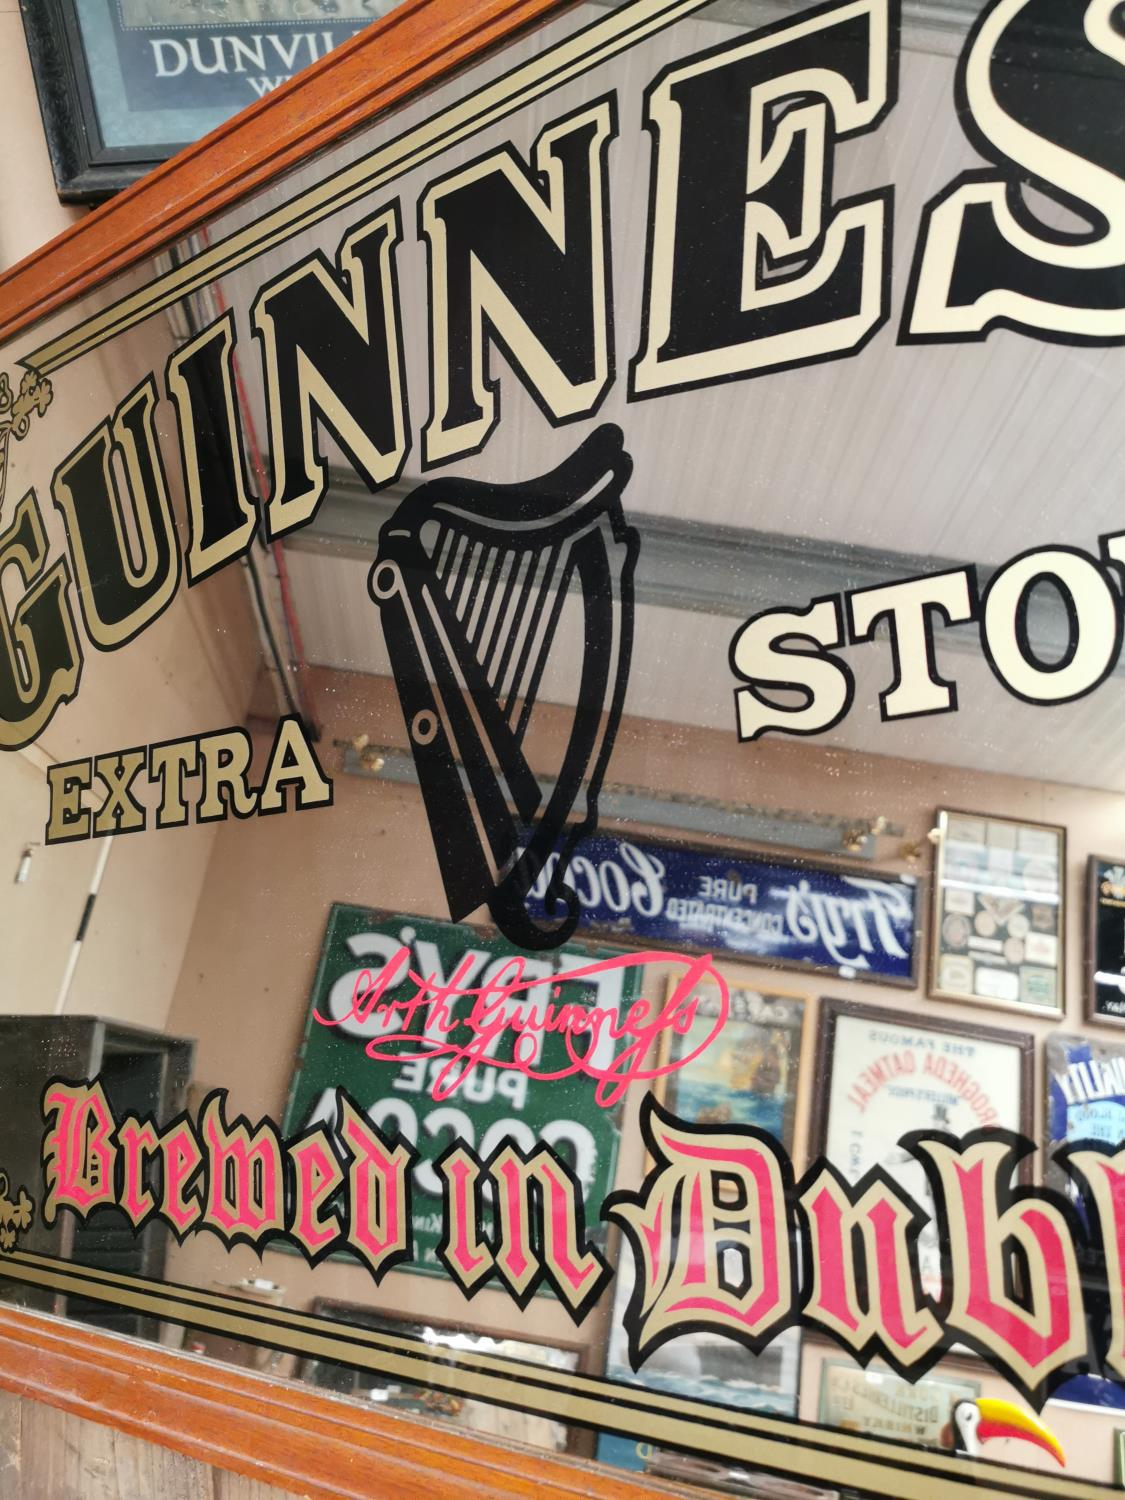 Guinness Extra Stout advertising mirror. - Image 2 of 2